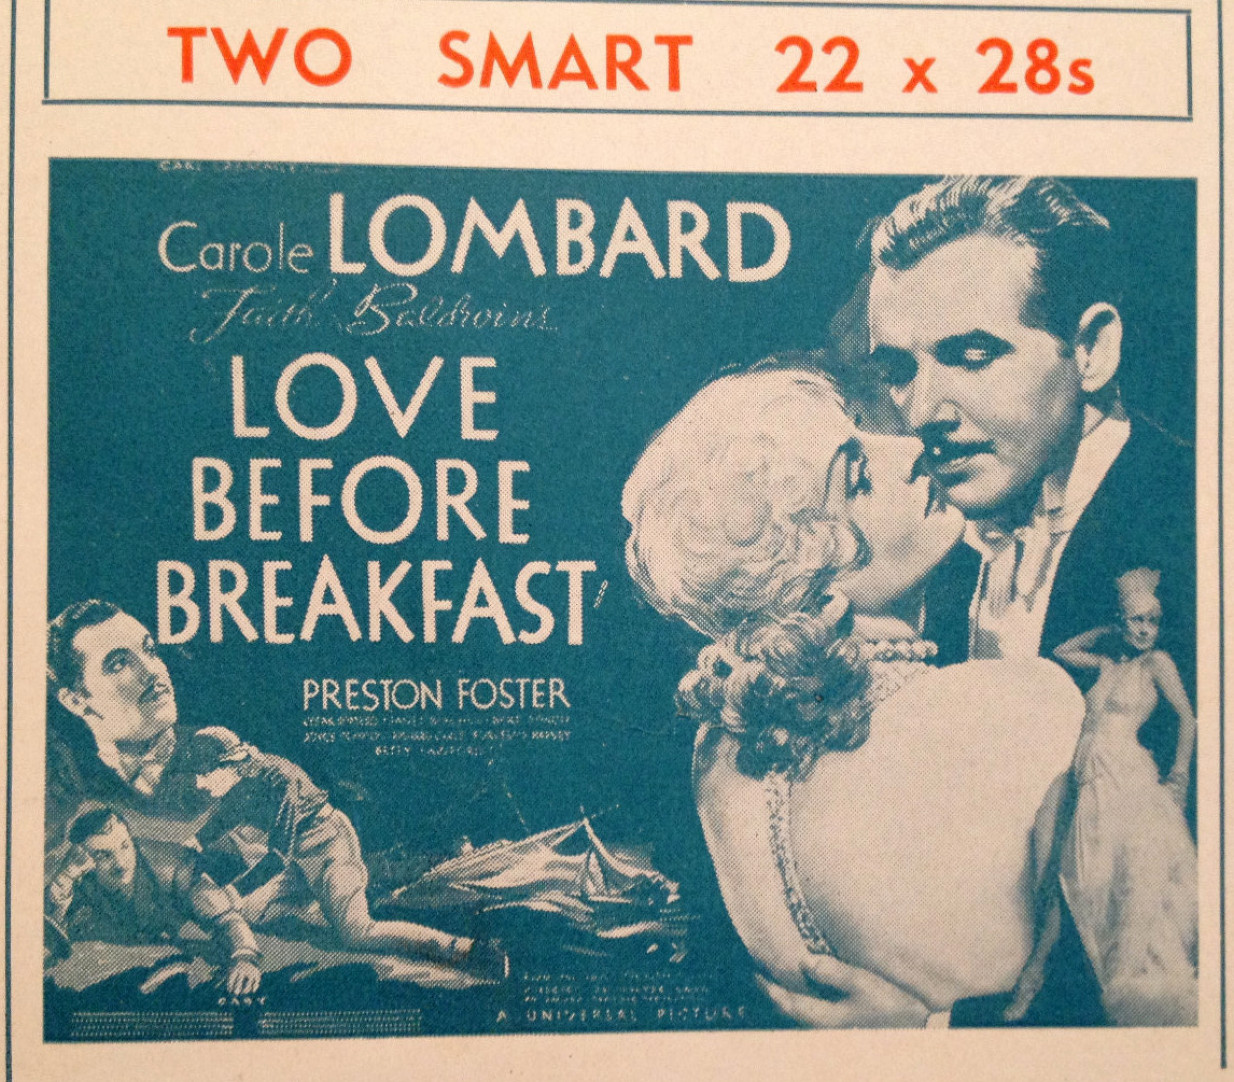 carole lombard love before breakfast pressbook 02a